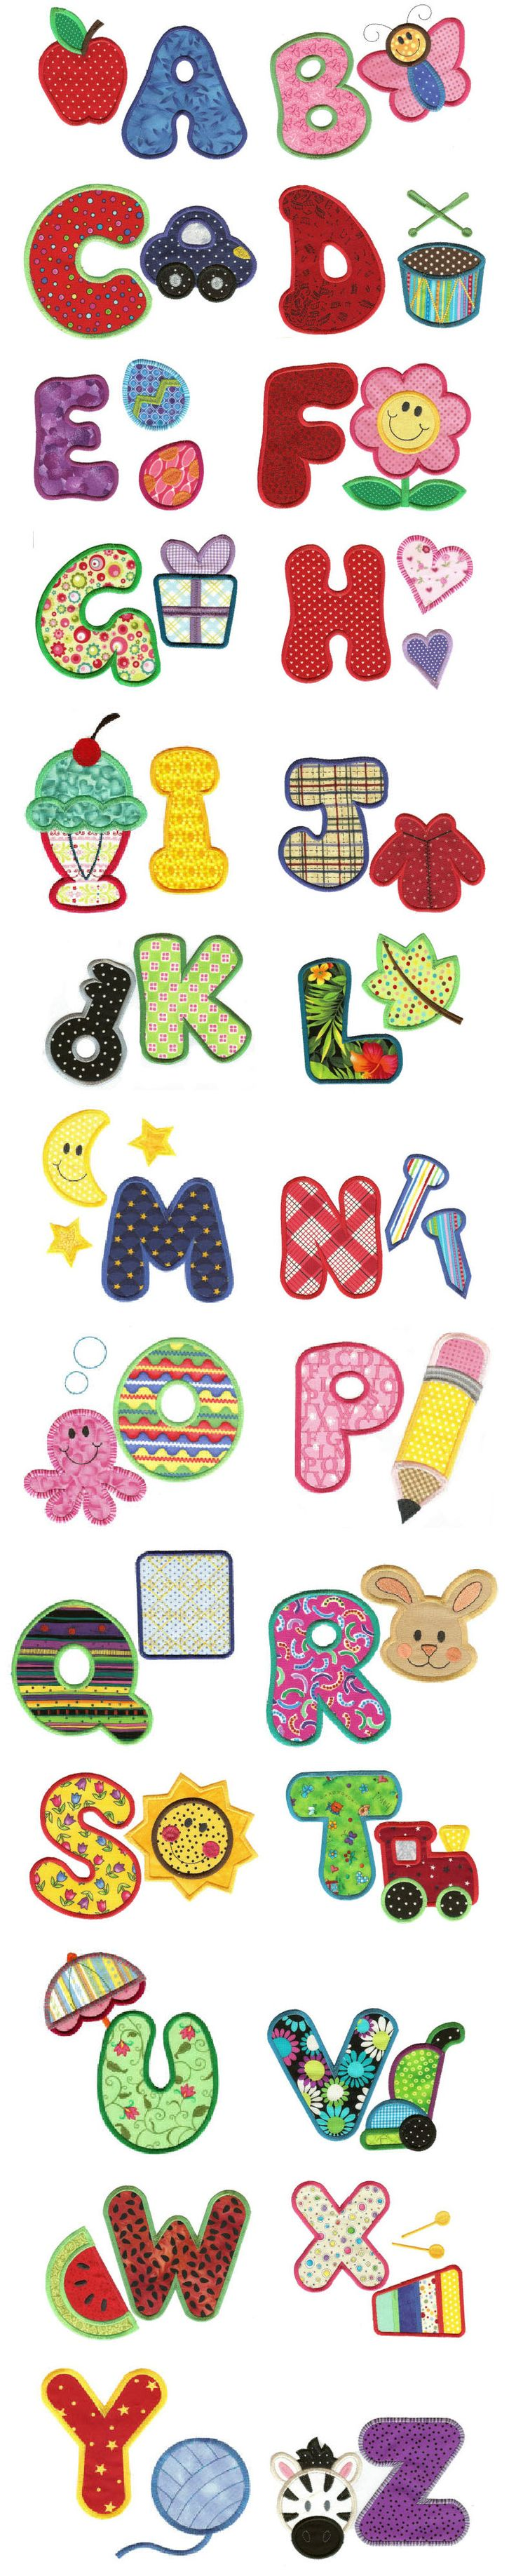 My ABCs Applique Alphabet  | Designs By Juju  {9oct13 Source accessed}